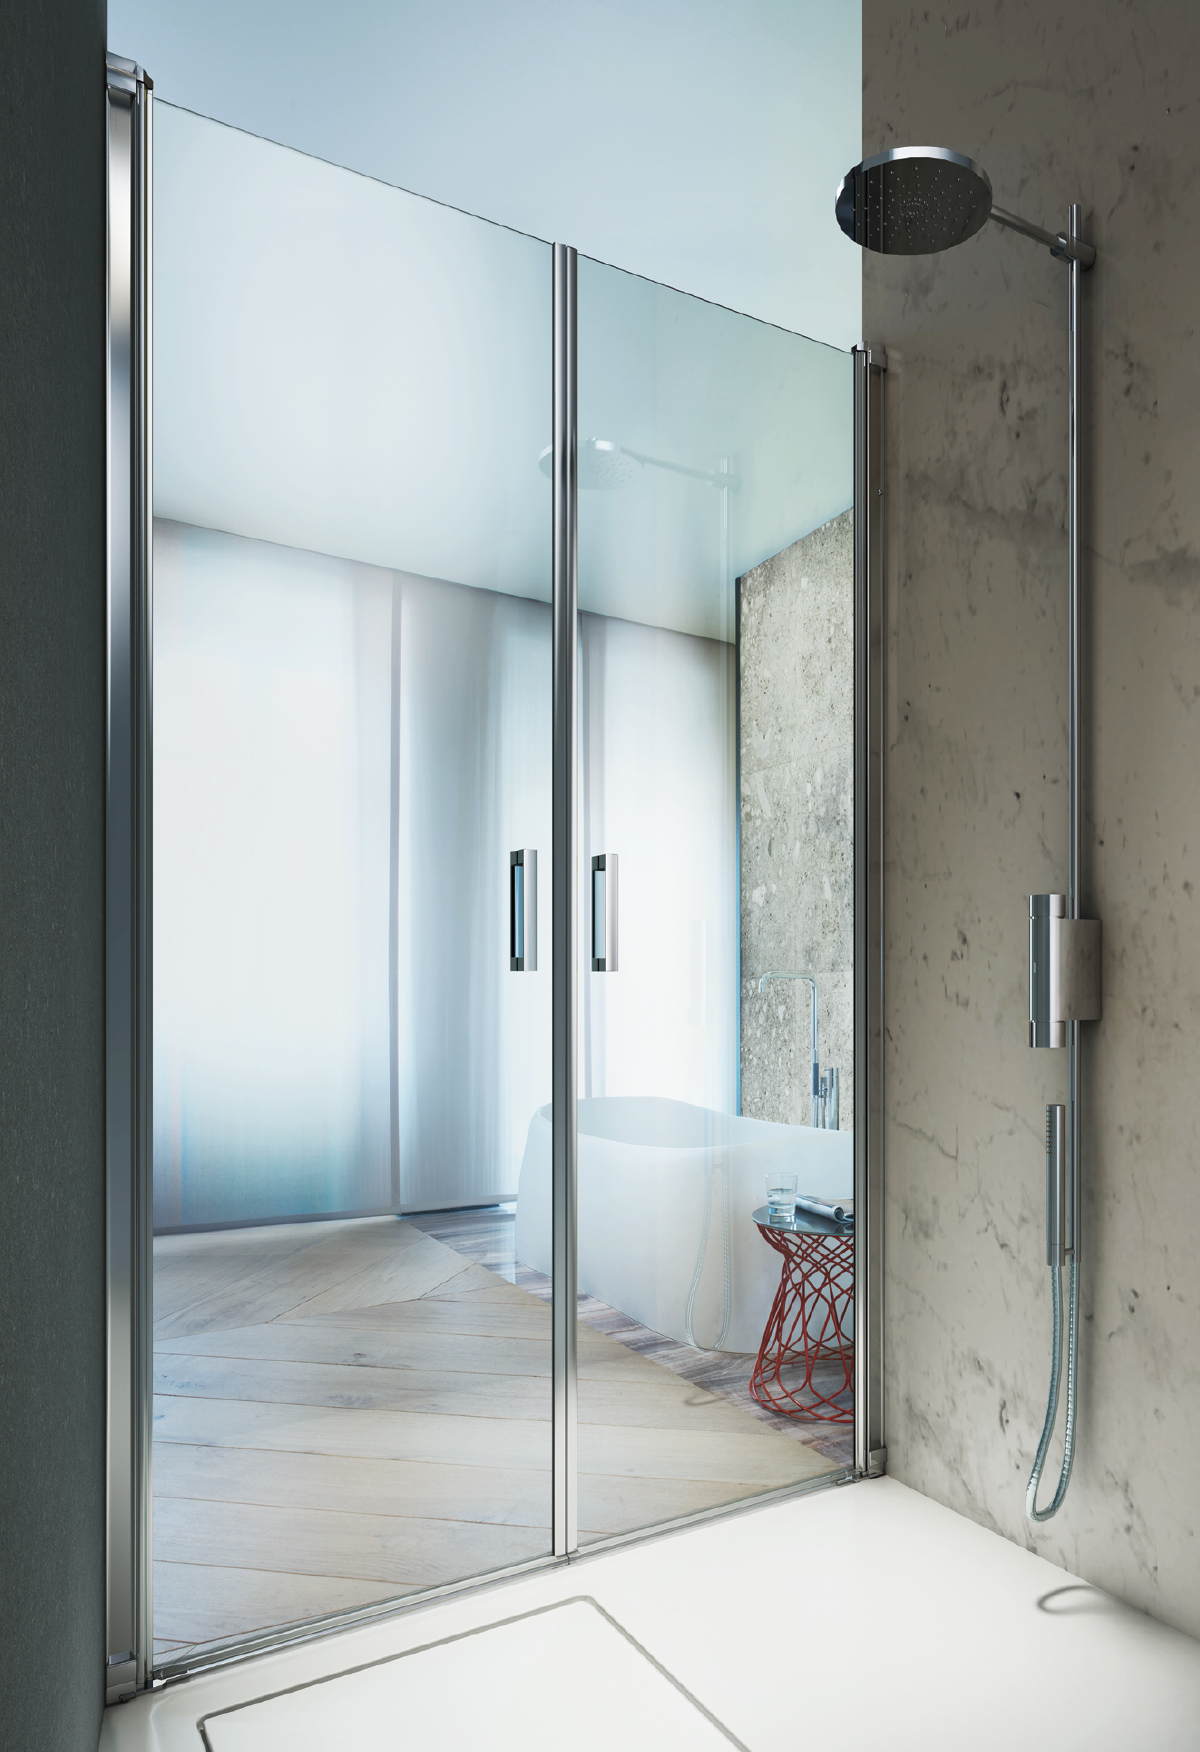 Shower enclosure for people with reducing mobility